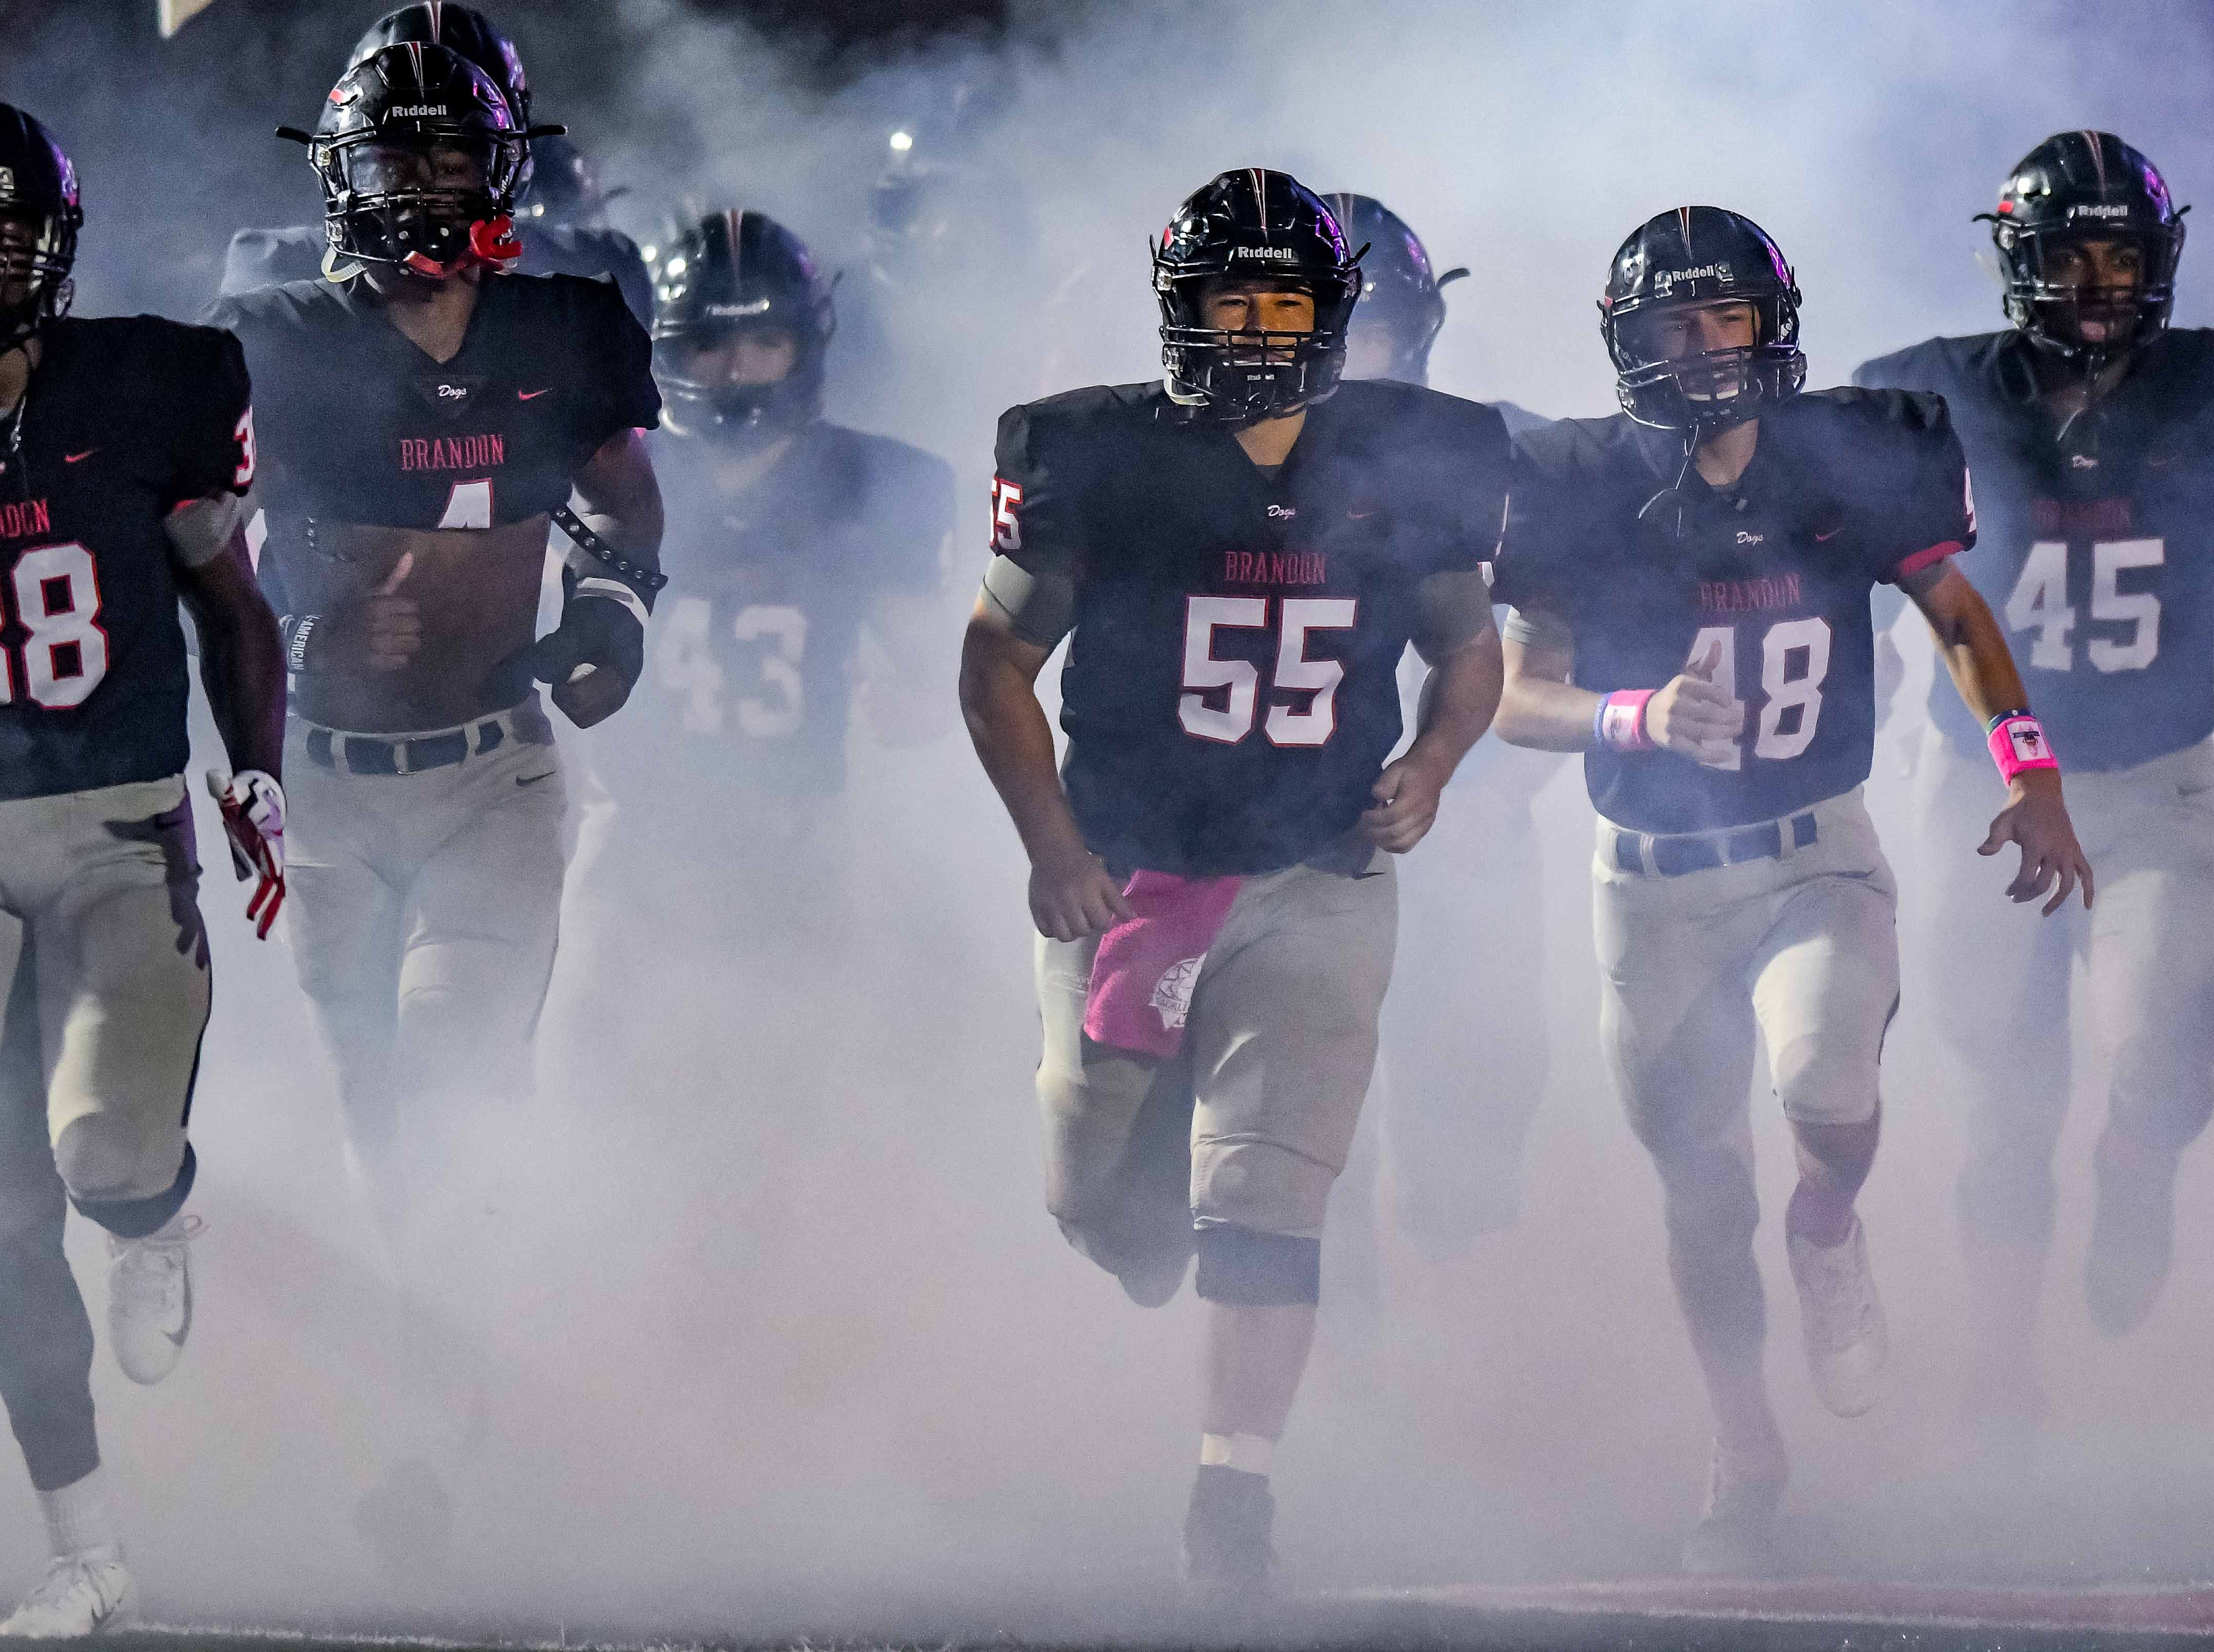 Brandon players hit the field before their game against Petal during game action held Friday October 5, 2018 in Brandon, Mississippi.(Photo/Bob Smith-For the Clarion Ledger)